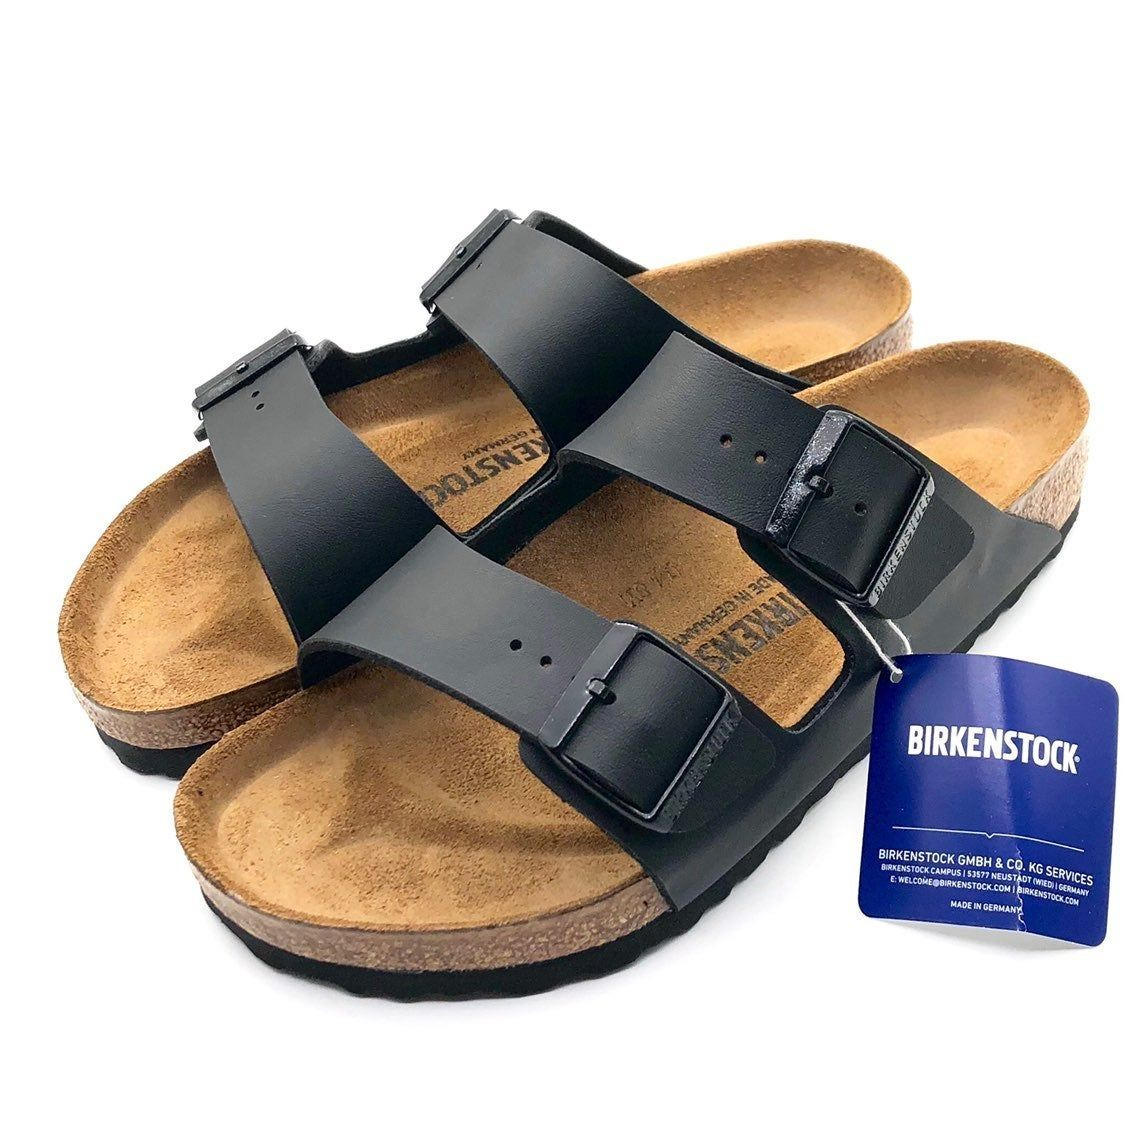 This Is A Brand New Birkenstock Arizona Regular Fit Size 41 Ladies 10 Mens 8 Color Black Insole Leathe Birkenstock Shoes Birkenstock Arizona